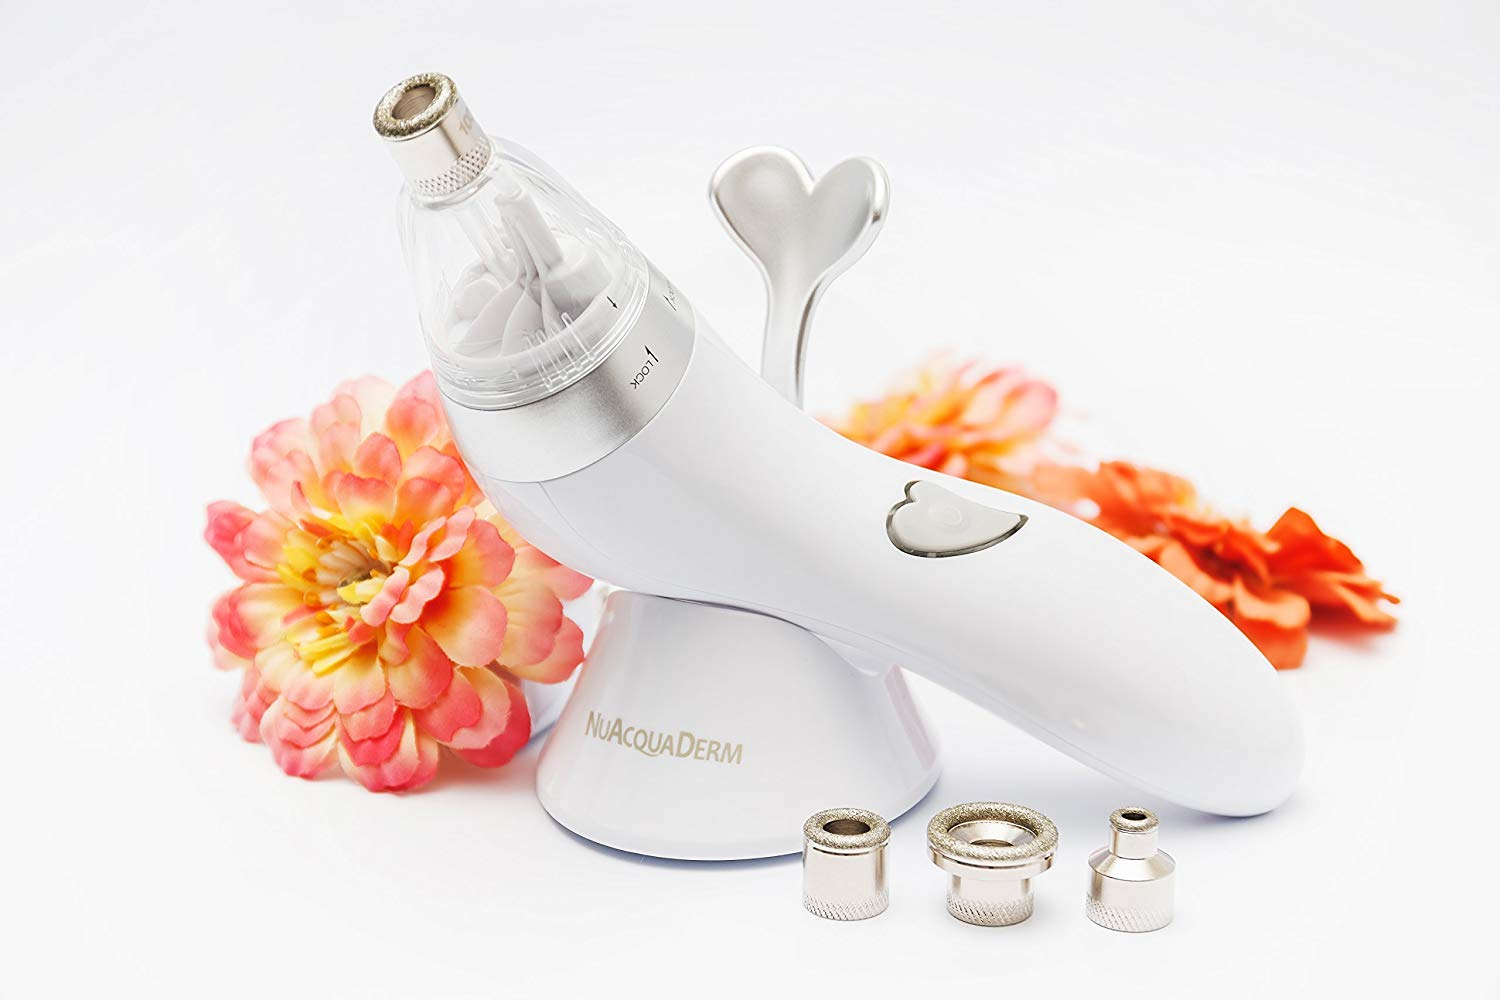 NuAcquaDerm Personal Diamond Microdermabrasion at Home System for Anti-aging and Exfoliation: Fresh, Rejuvenated Skin with Improved Tone, Texture and Elasticity